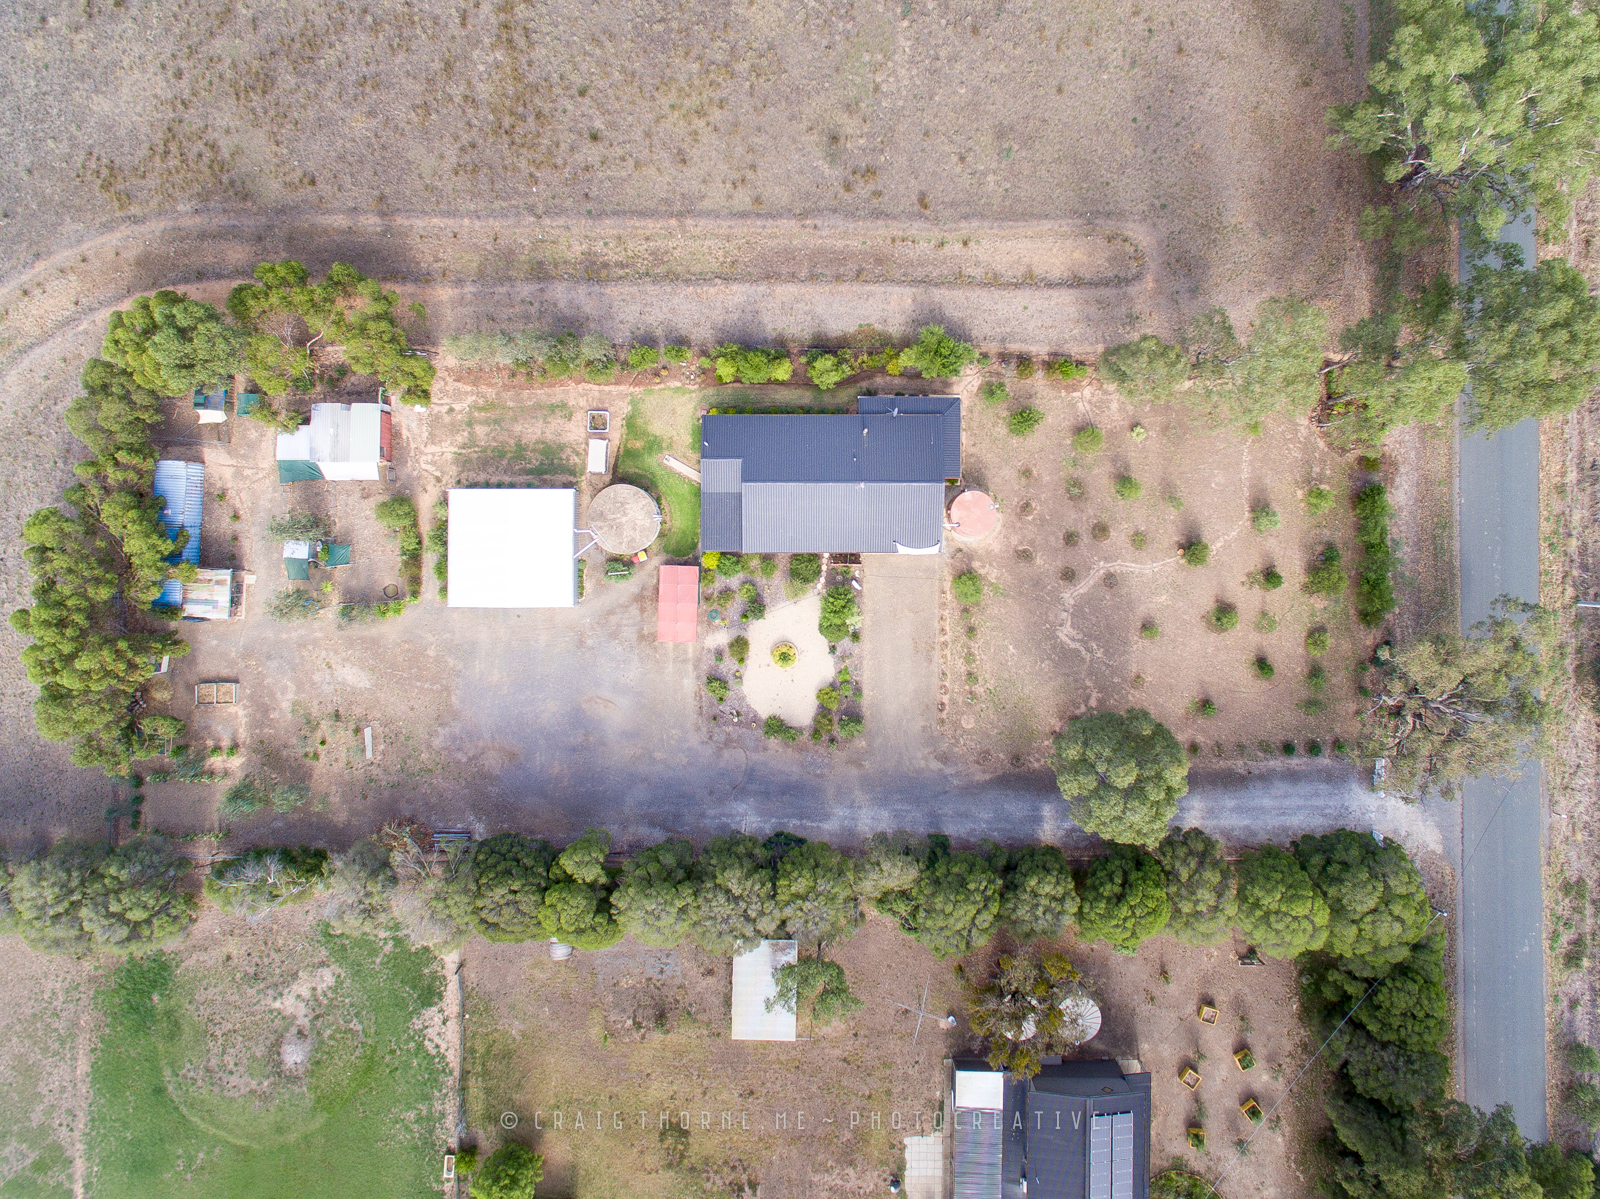 180208-04-CRE-710-Coomboona-Rd-Coomboona–©CT-DJI_0900.jpg